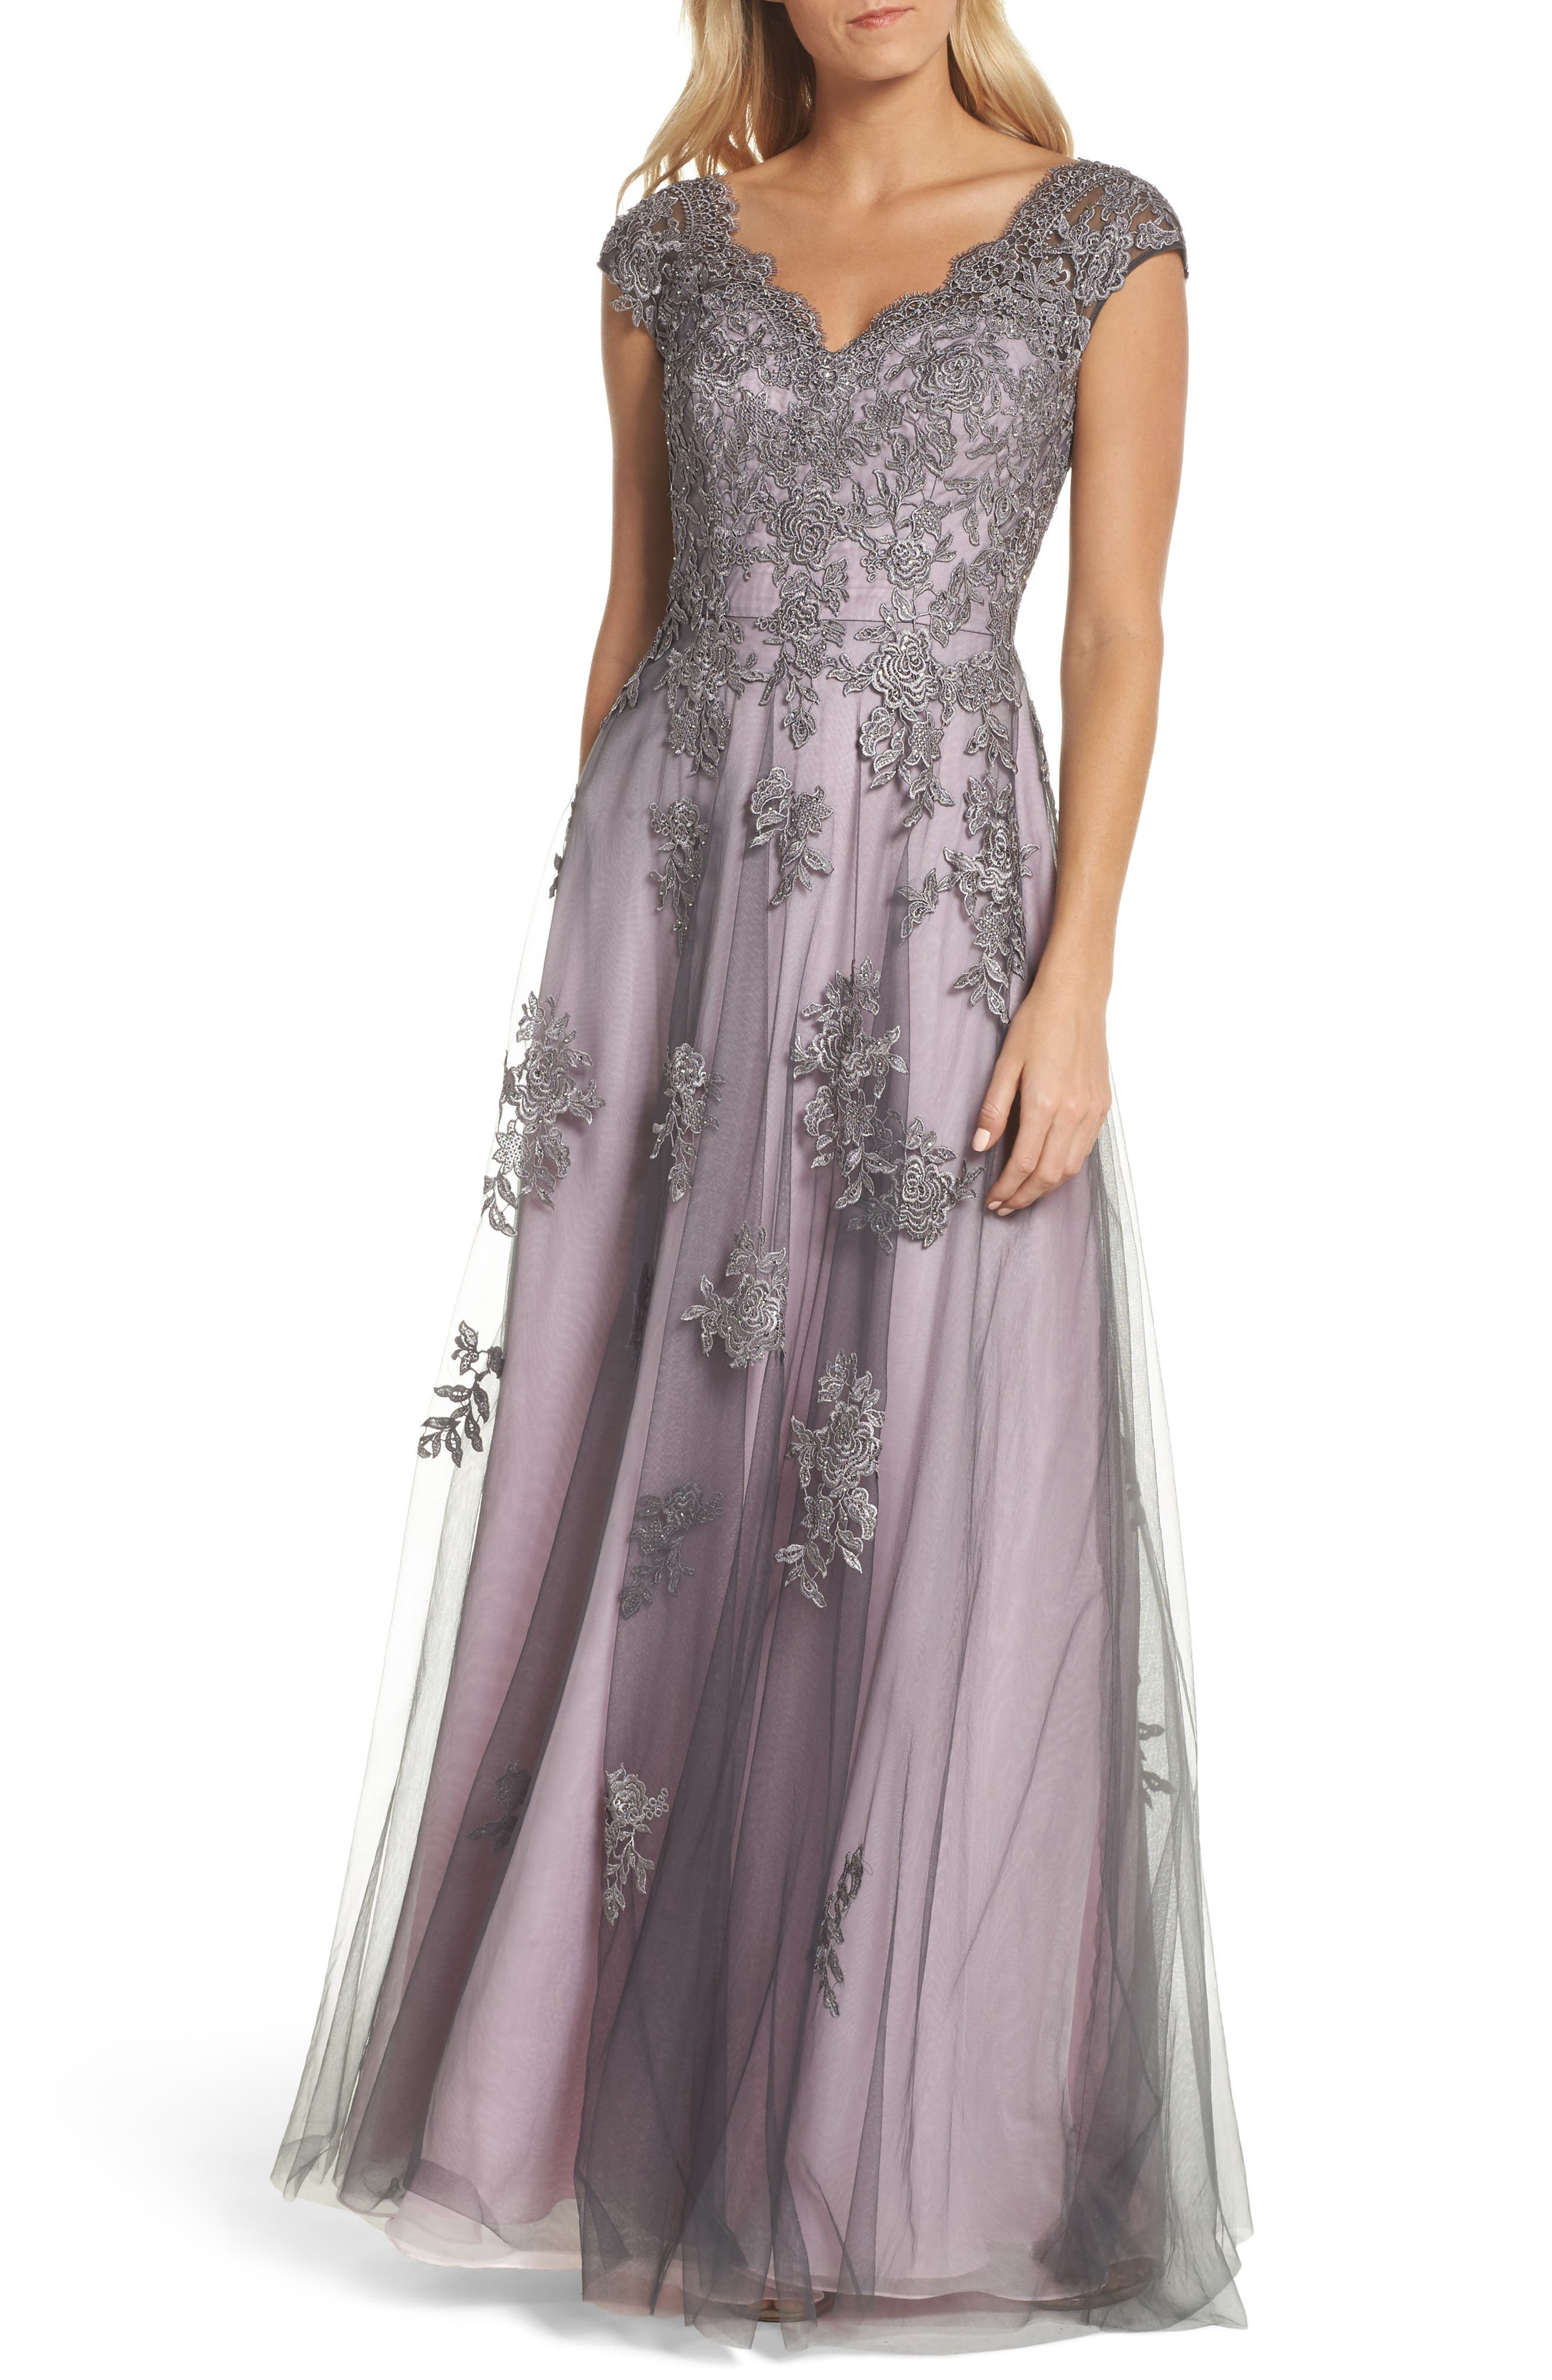 Embellished Mesh A-Line Gown,                             Main thumbnail 1, color,                             PINK/ GRAY